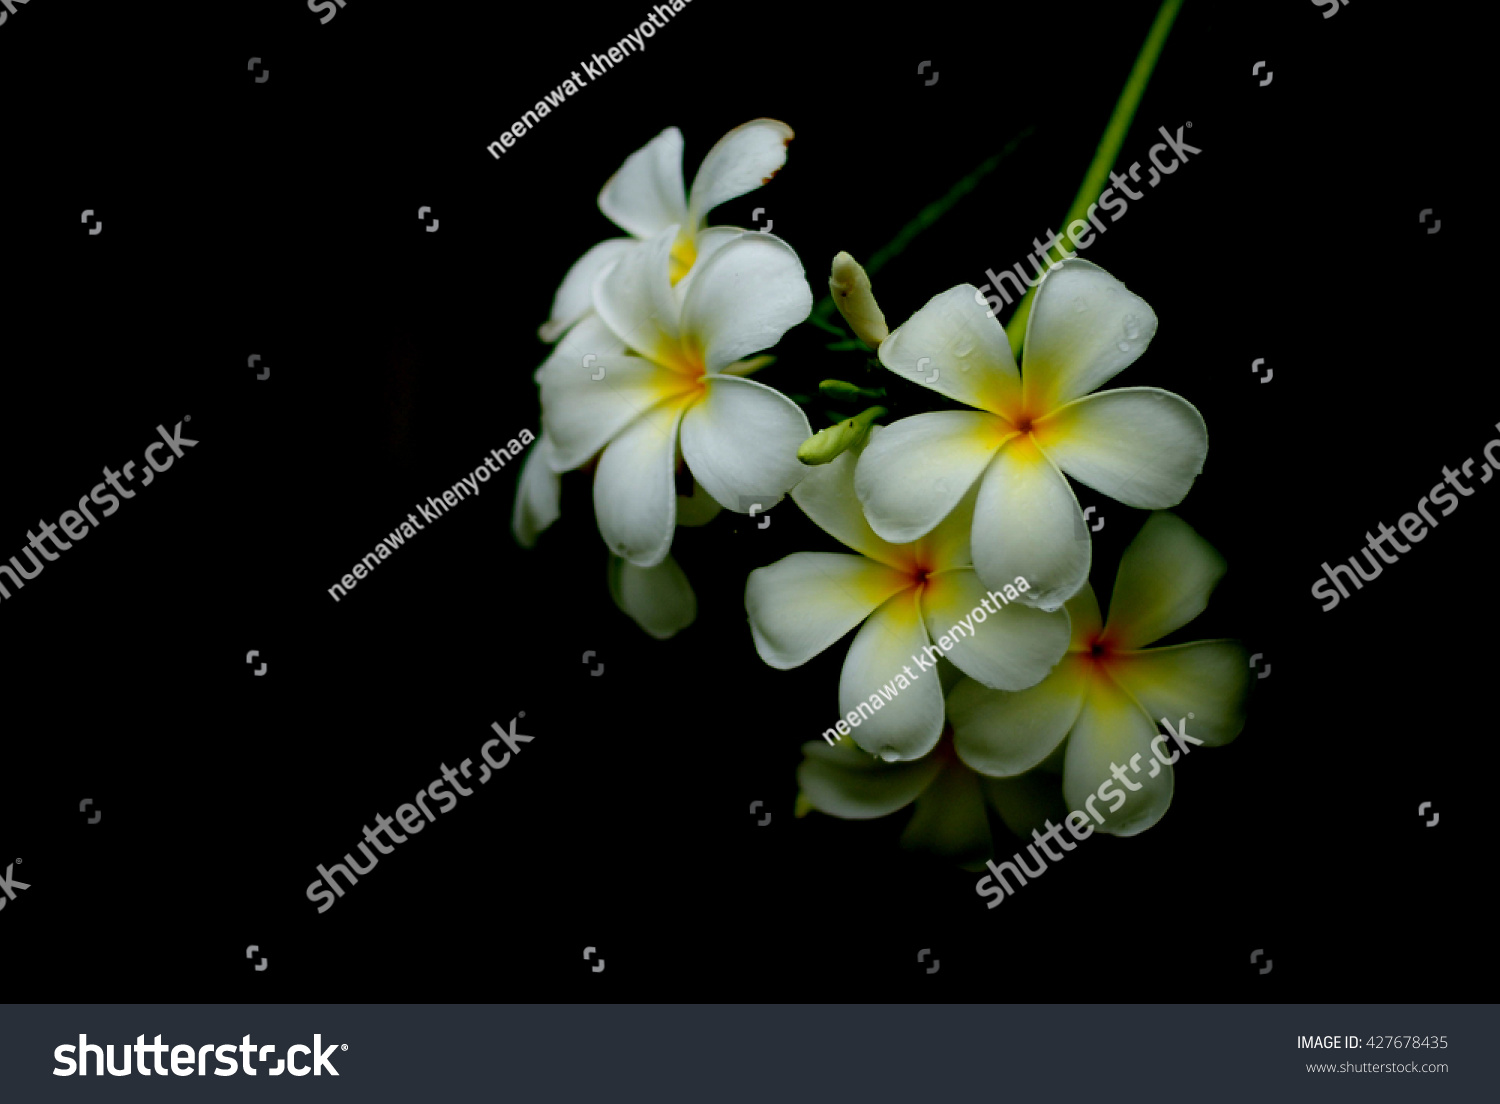 Royalty Free White Flowers Flowers Flowers Champa 427678435